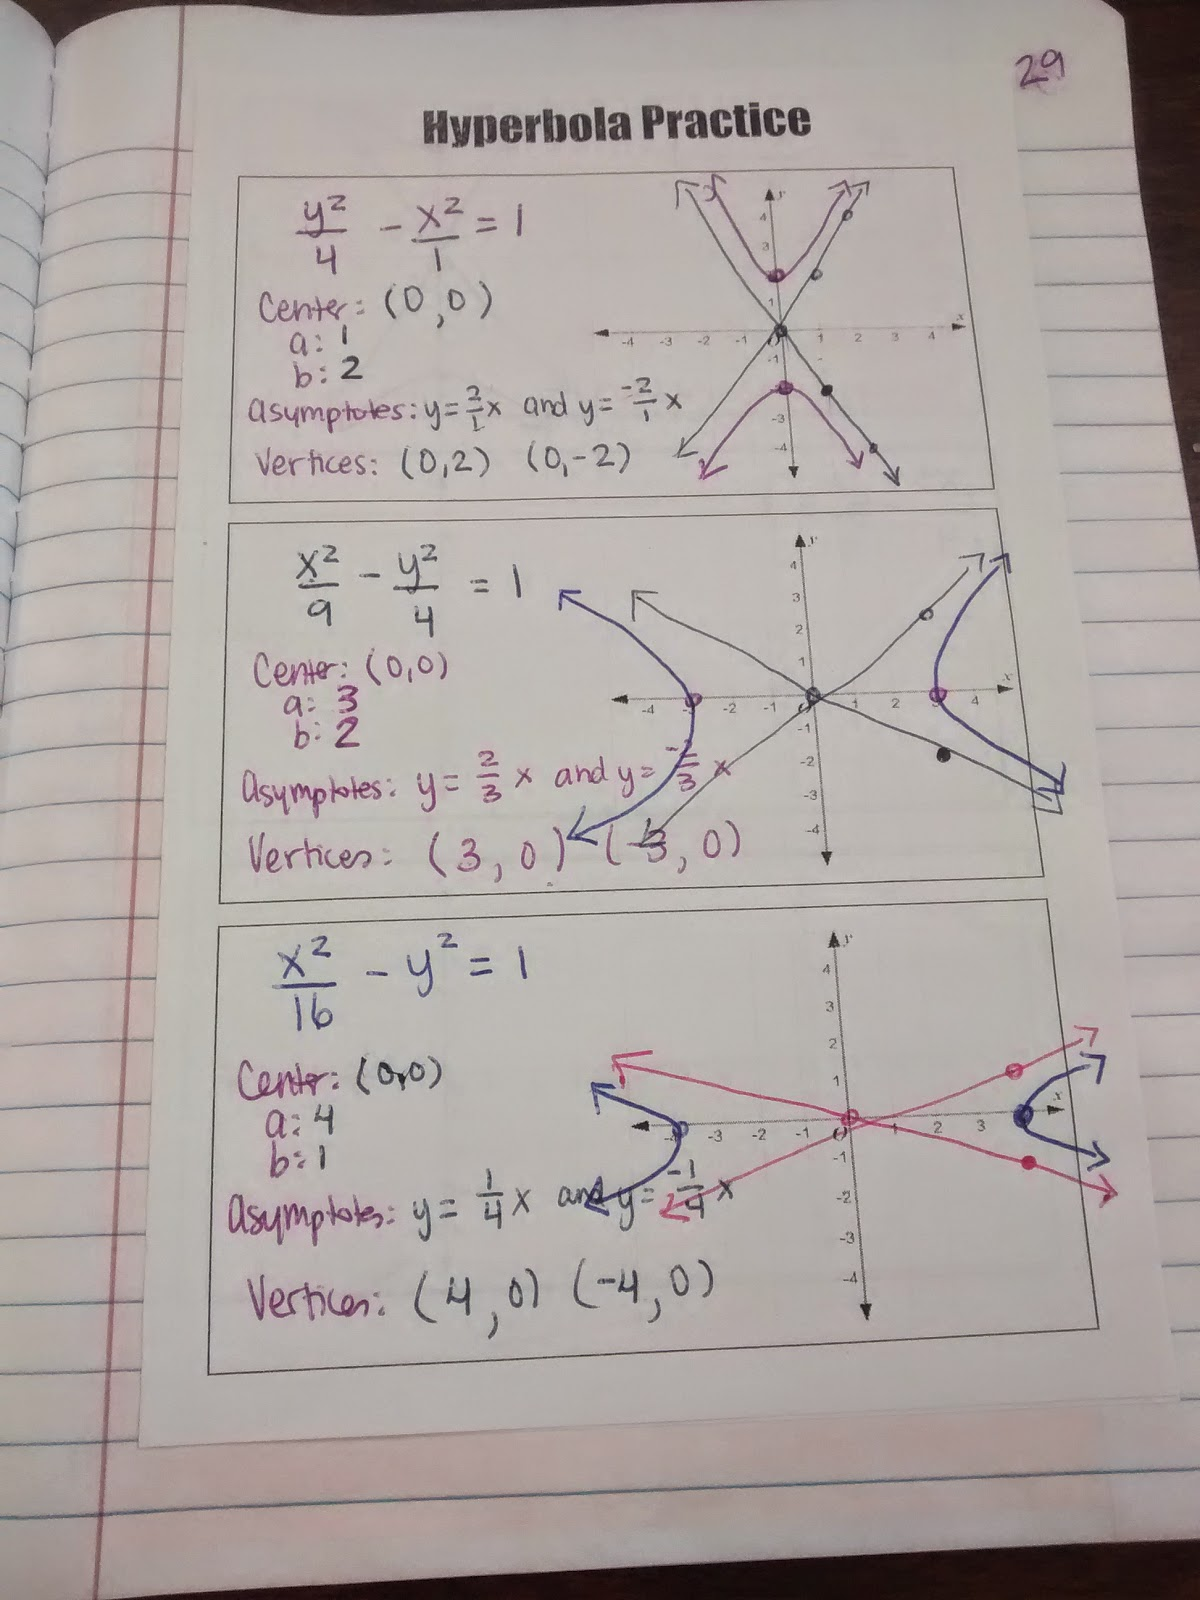 Fun Subtraction Worksheet Math  Love Algebra  Unit  Inb Pages  Text Feature Worksheets 3rd Grade Pdf with Math Worksheet Wizard Word Before I Posted About This Conic Section Foldable I Made But Never Used  This Year I Found A Use For It At The End Of Our Section On Conics  Key Stage 2 Science Worksheets Word